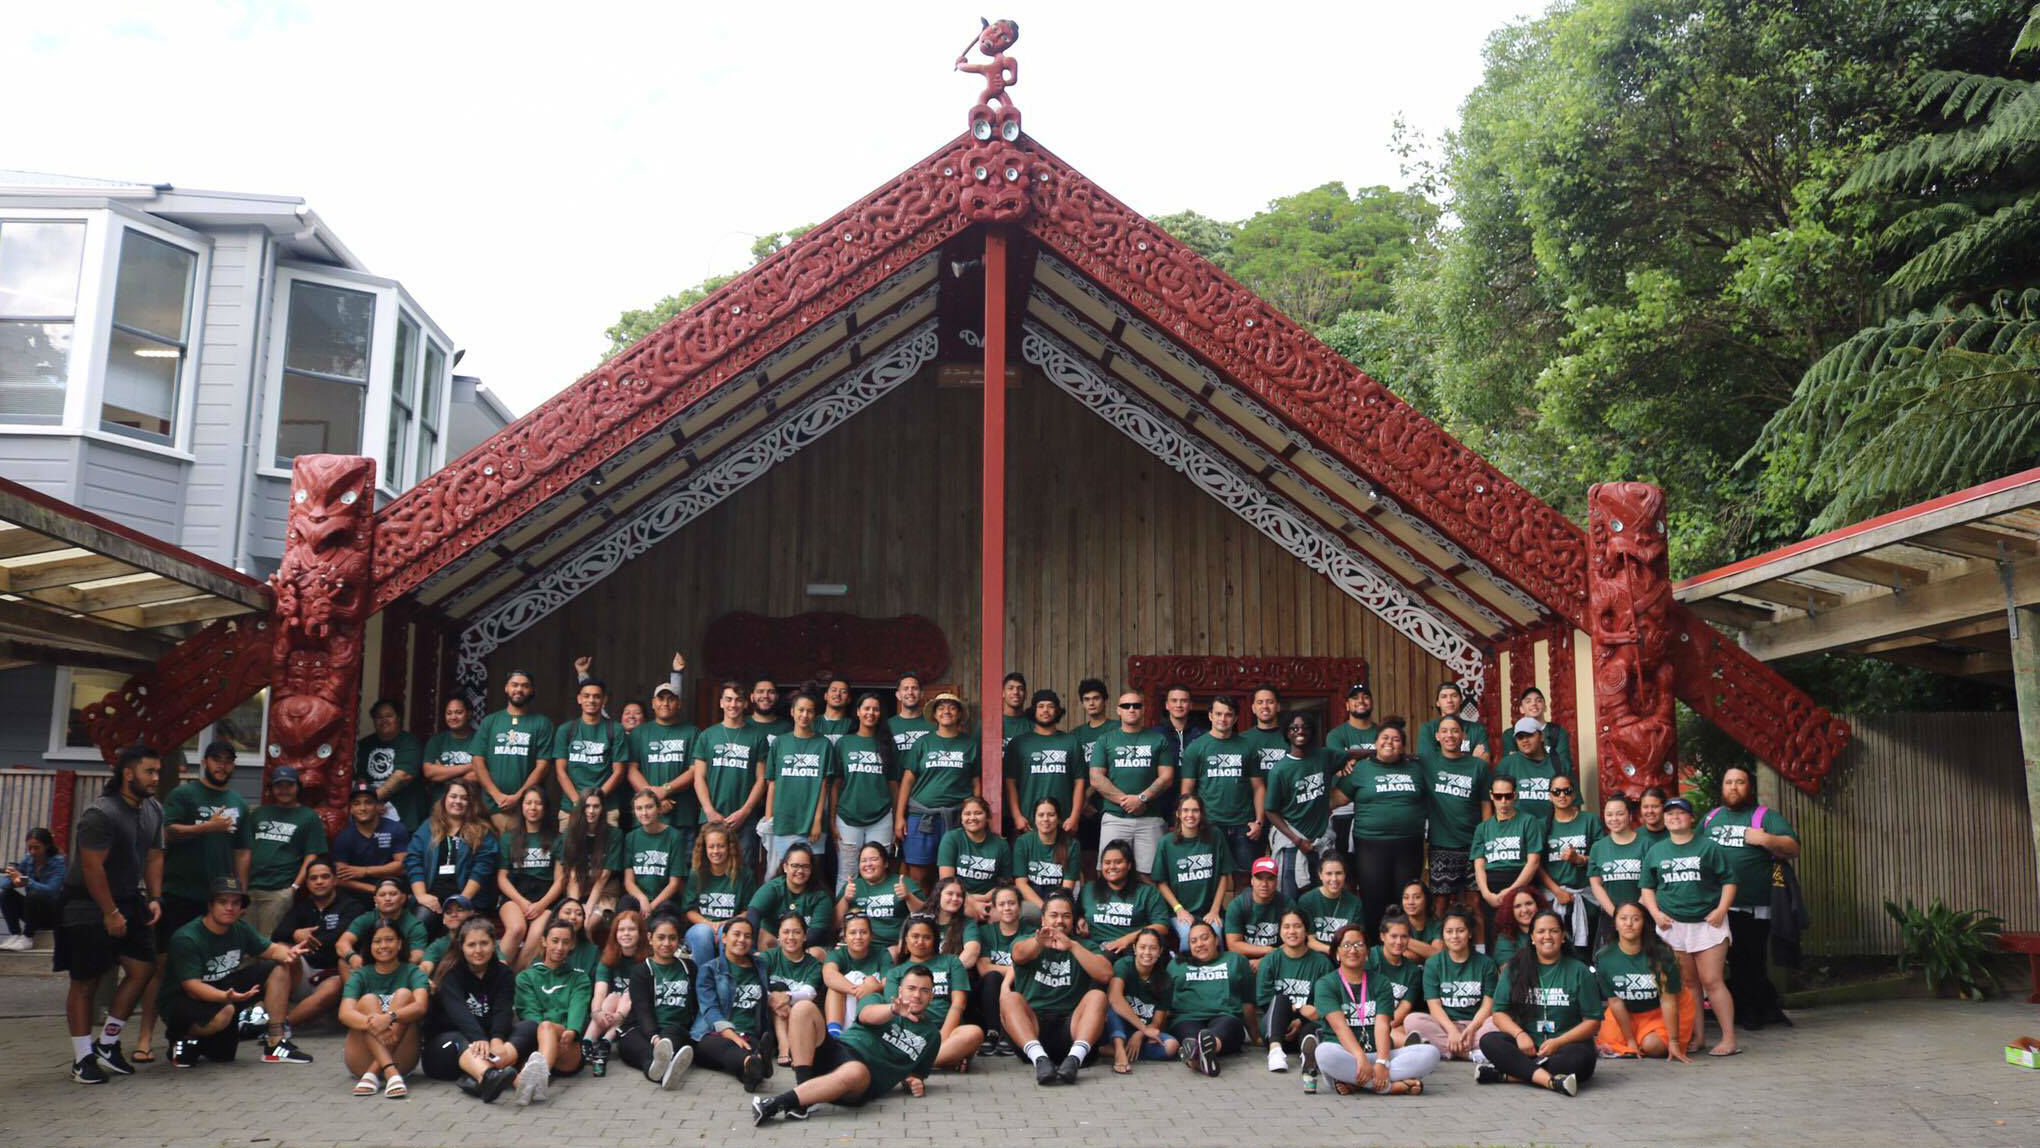 Whanau on campus – many students pose for a picture outside of the Marae.